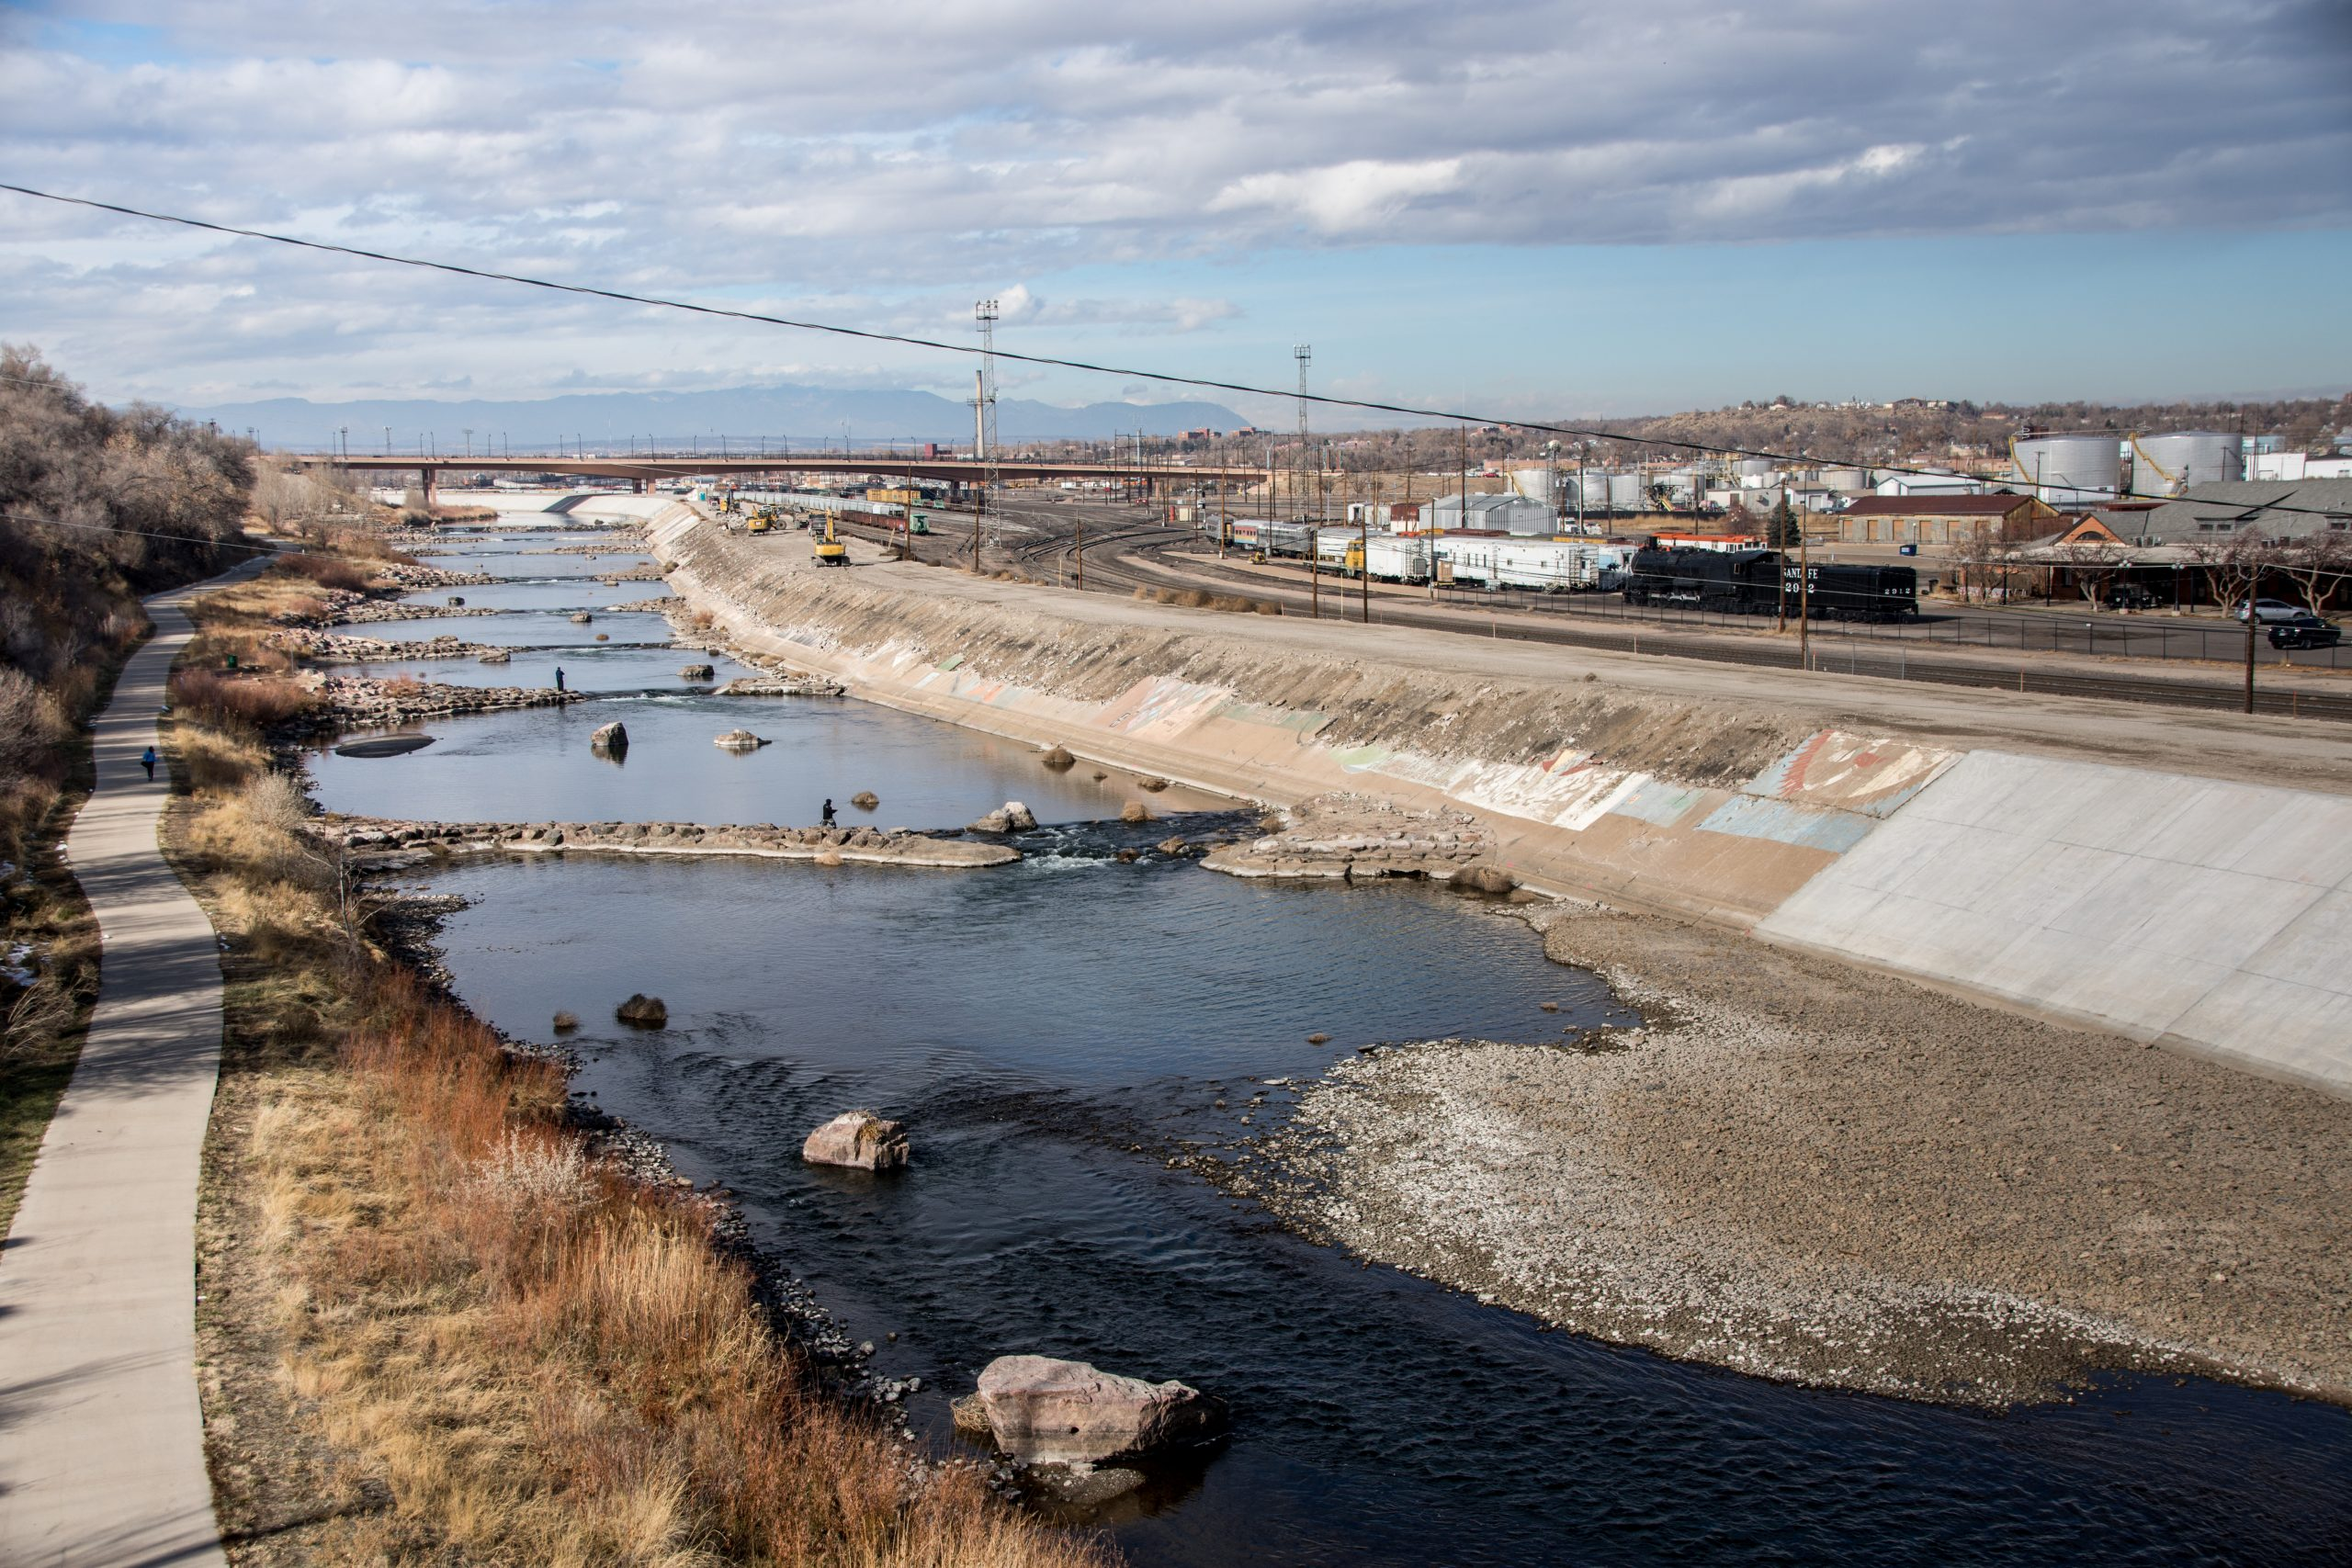 The last section of the Arkansas River levee in Pueblo will be resurfaced this winter. Here, the old surface containing the mural is being taken down, while the new surface is clean. Planning for new art is underway.